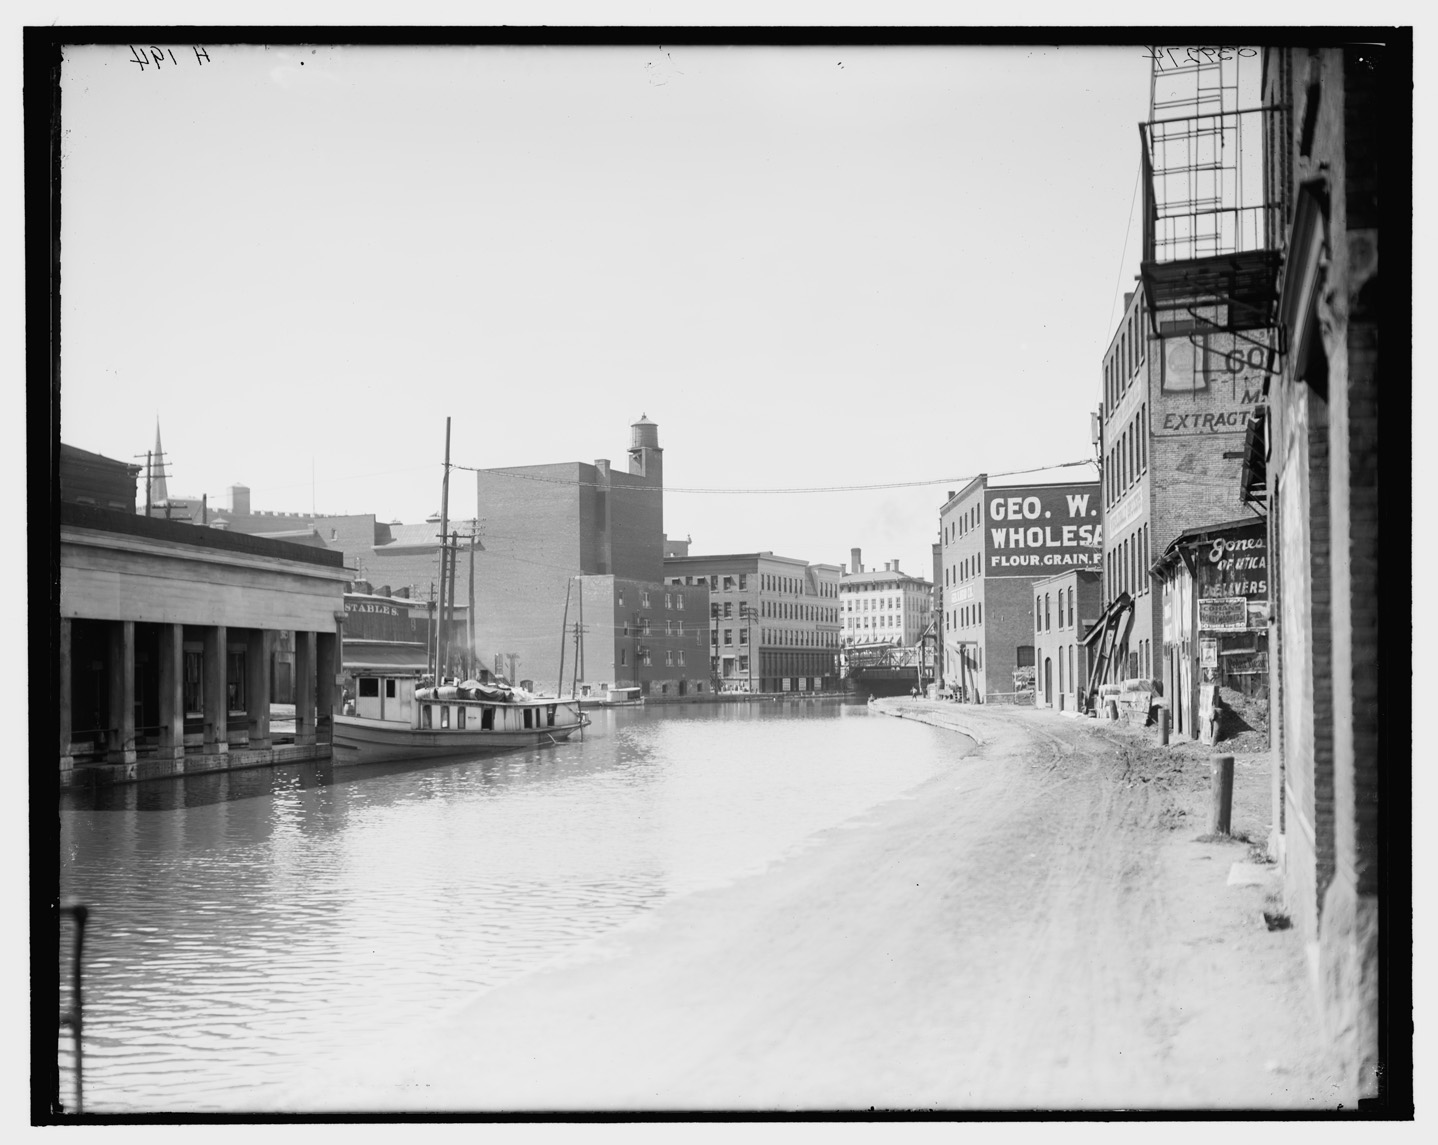 A black and white photograph shows a wide, calm water canal curving through a developed town. On the right side, the water is bordered by sand and then buildings. On the left side, the water rises directly up to buildings. There is a boat tied up to one building.